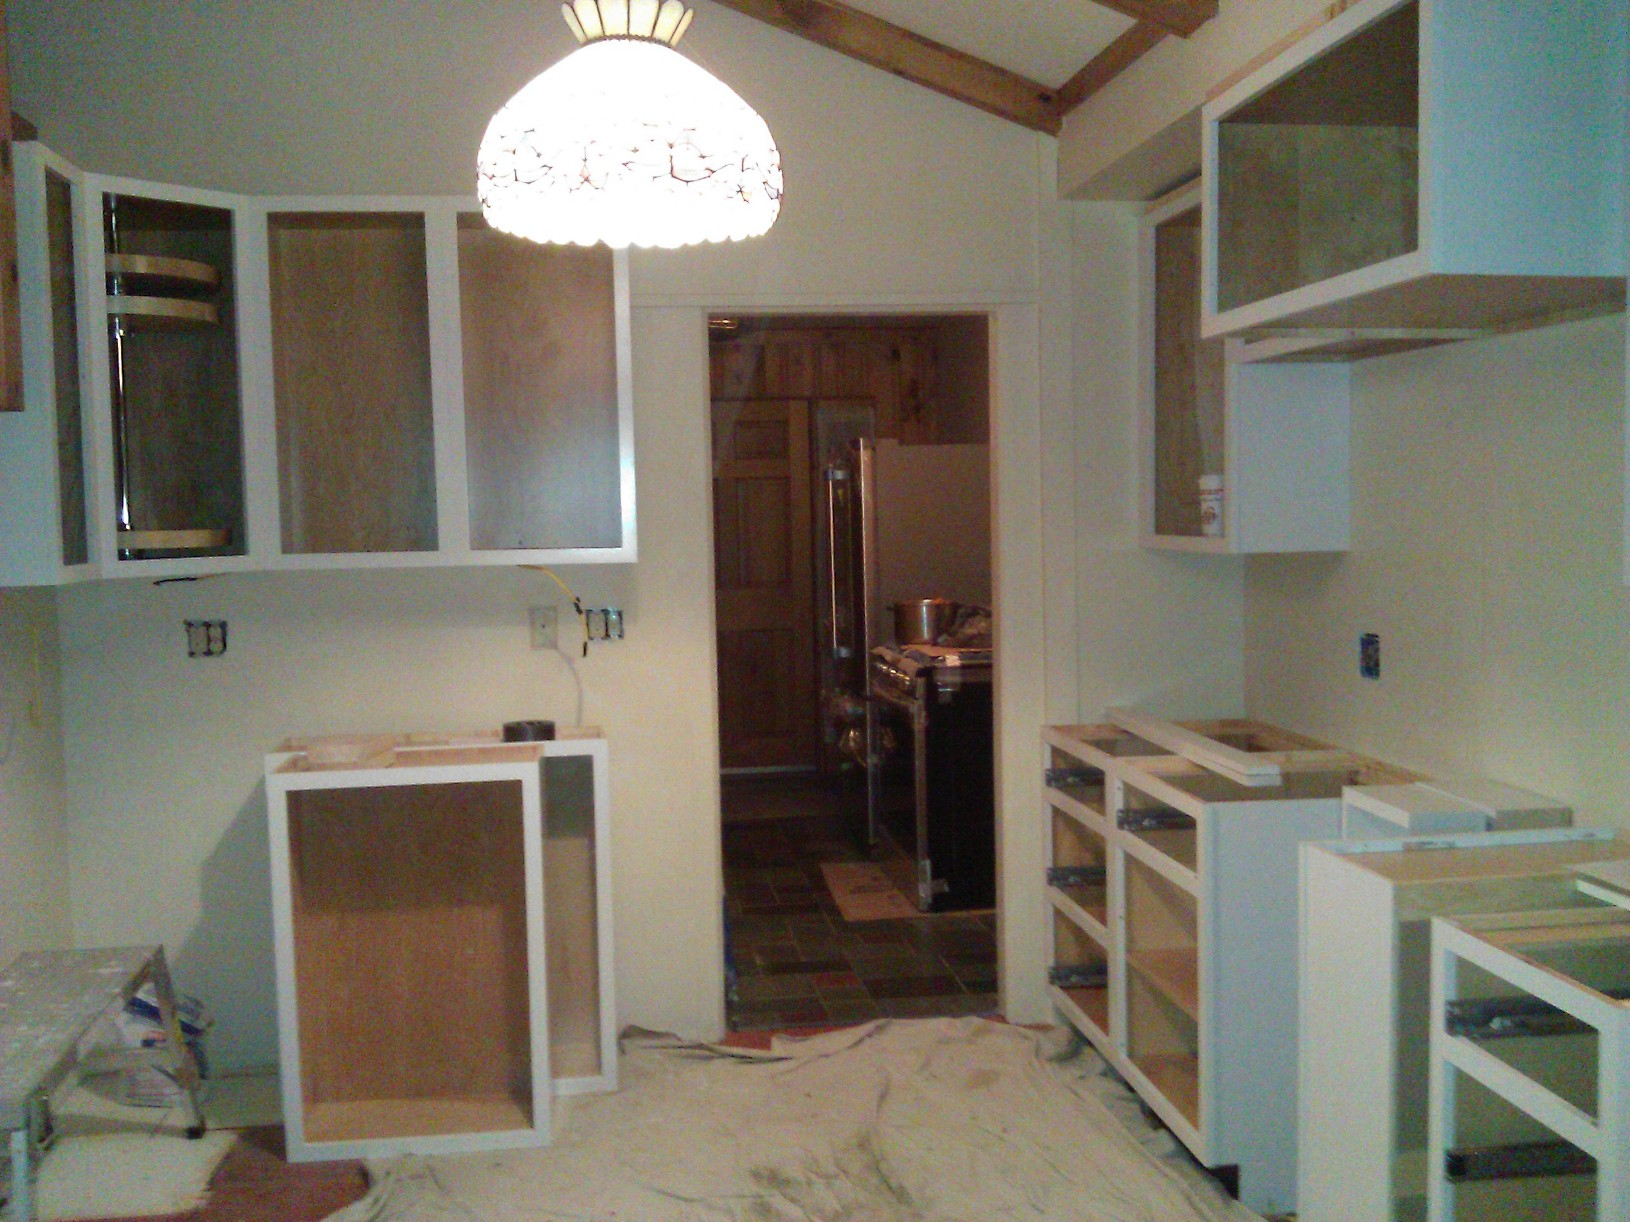 Kitchen Cabinets Thickness Of Door Slits